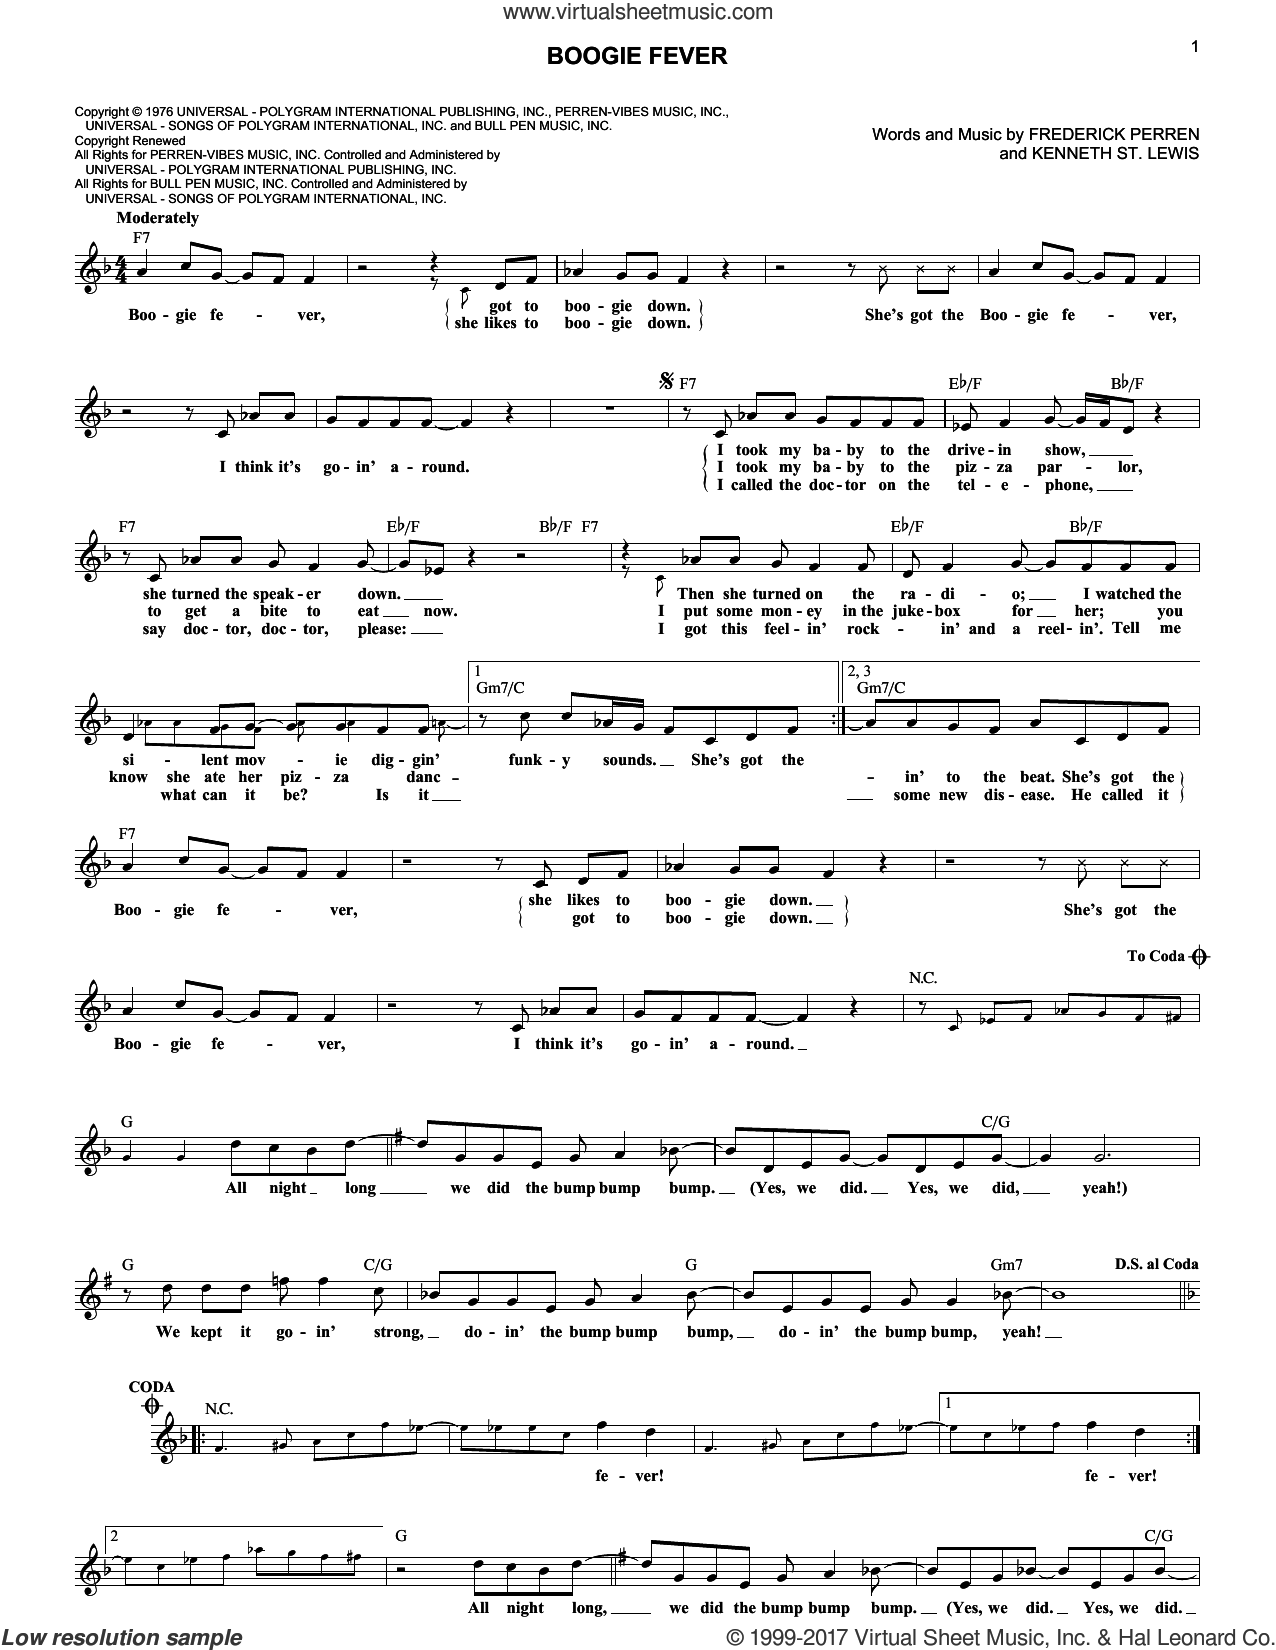 Boogie Fever sheet music for voice and other instruments (fake book) by The Sylvers, Frederick Perren and Kenneth St. Lewis, intermediate skill level